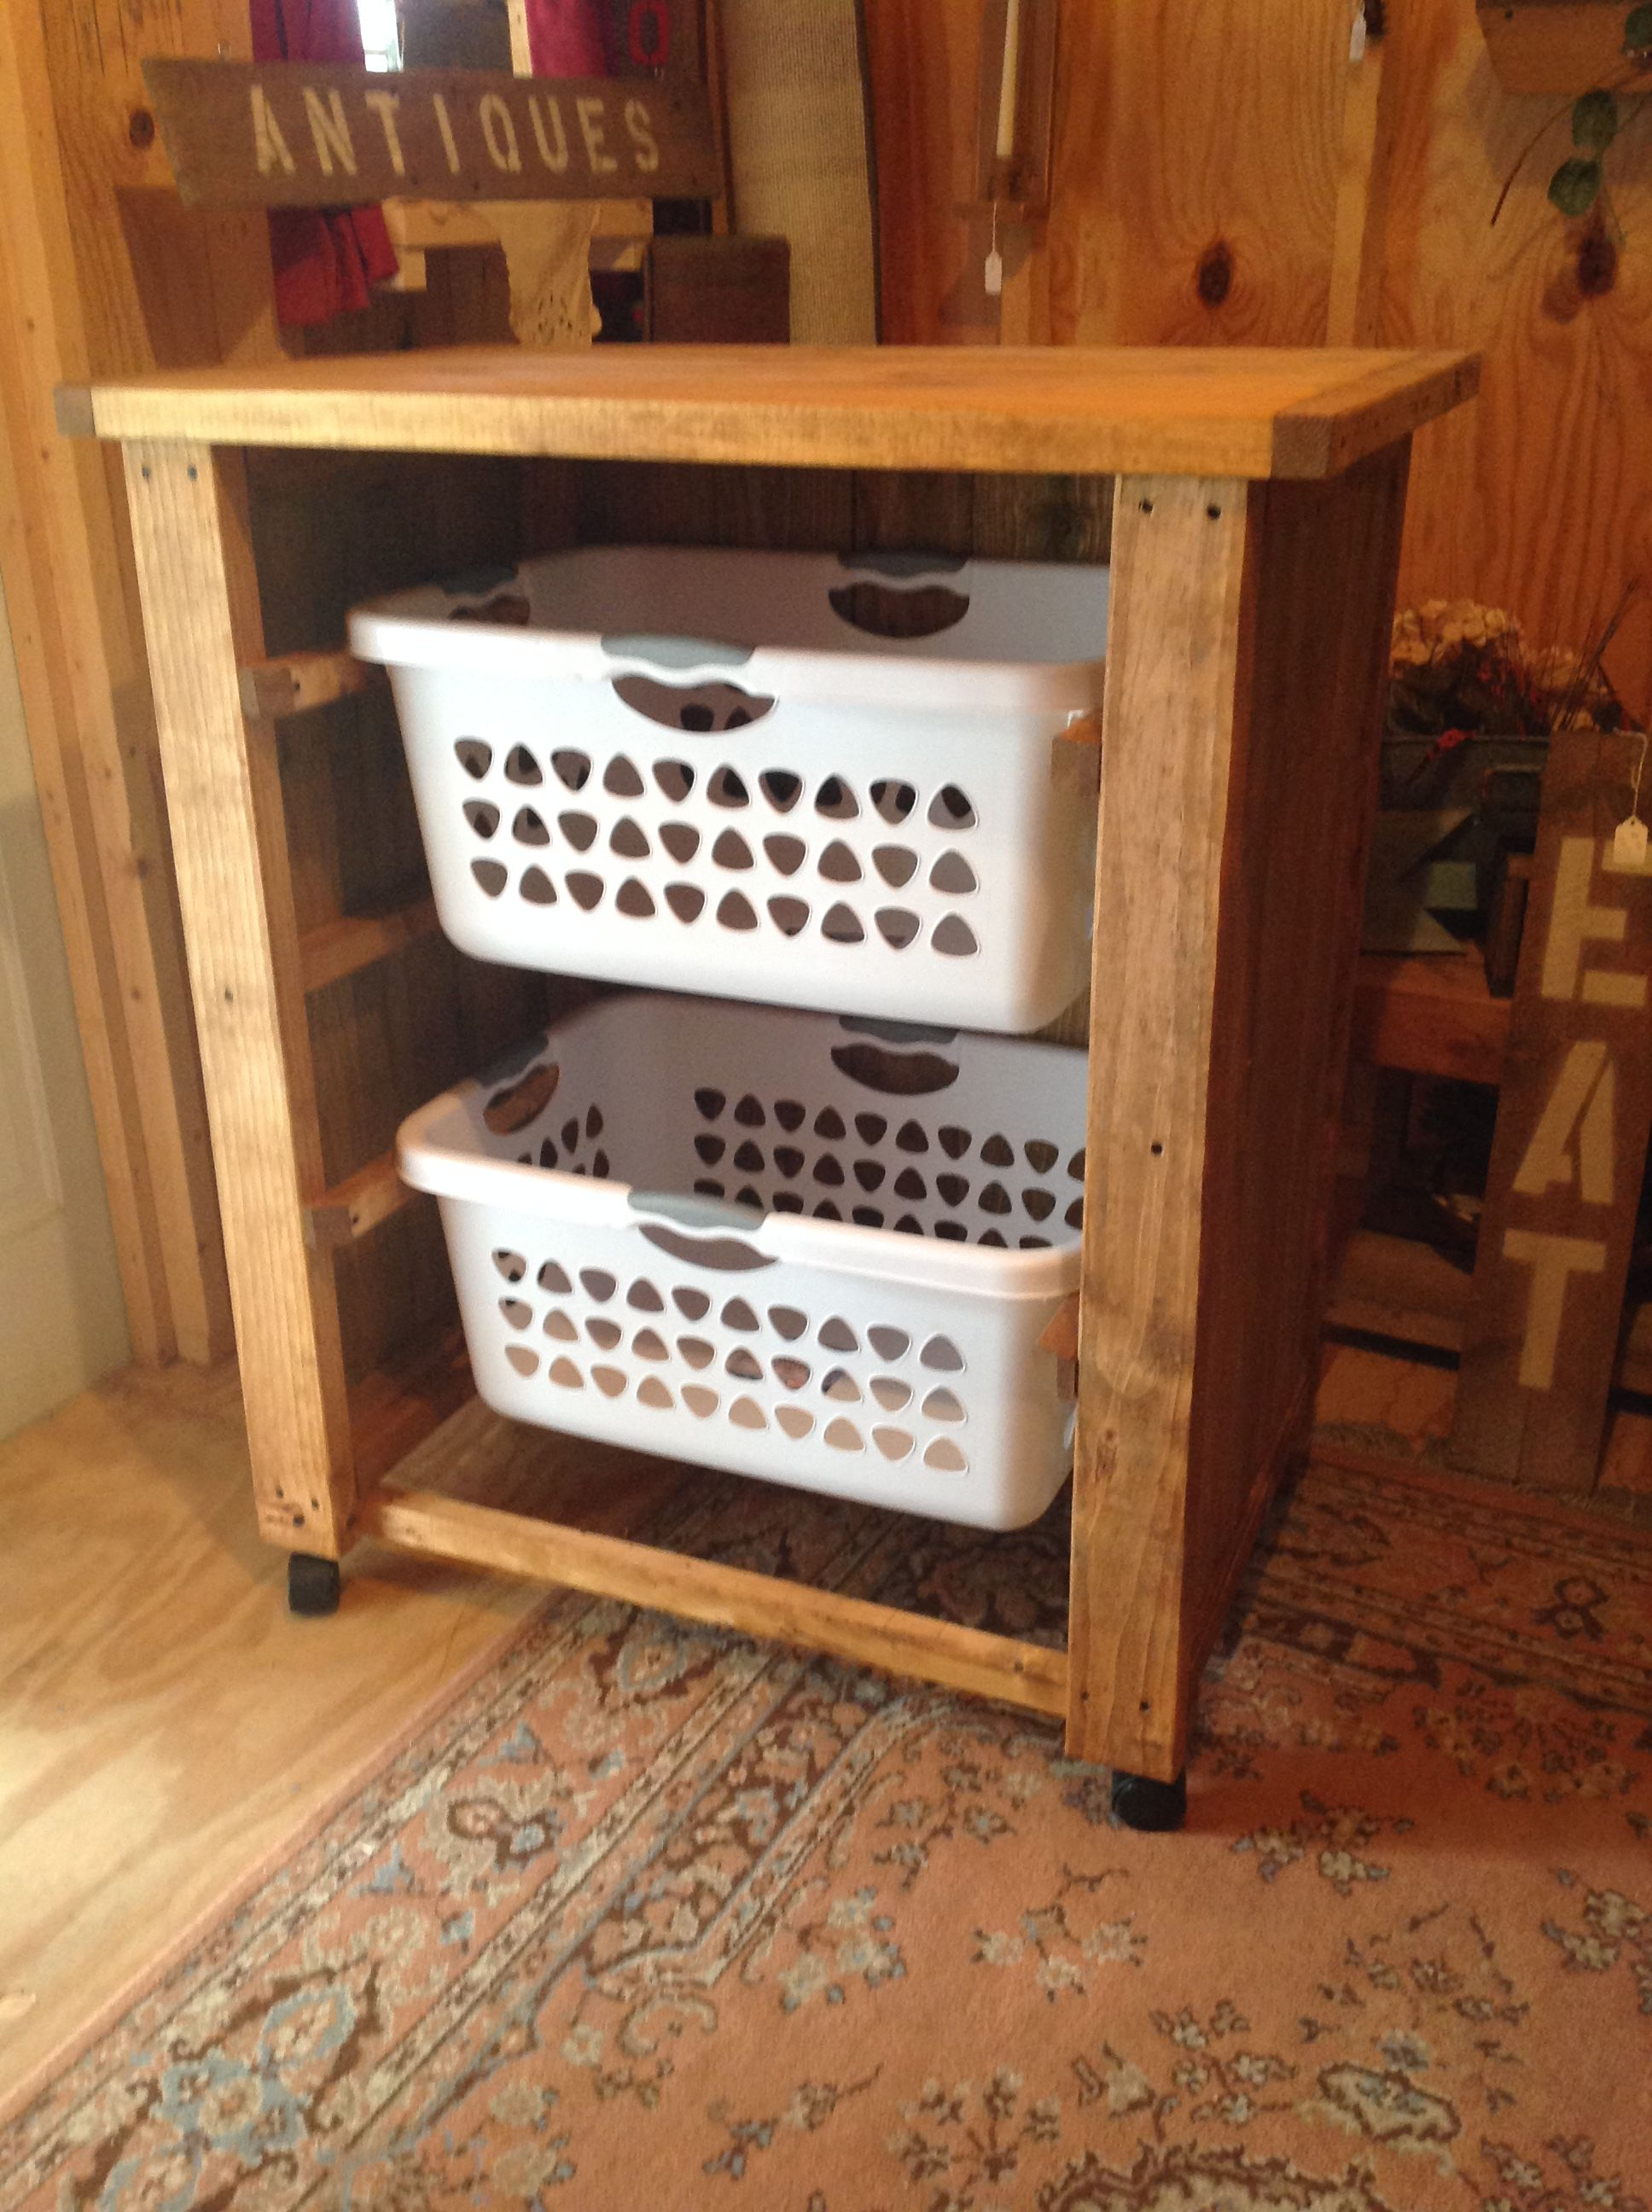 Laundry Basket Holder Made By Wooden Wonders Laundry Basket Holder Wooden Basket Laundry Room Decor